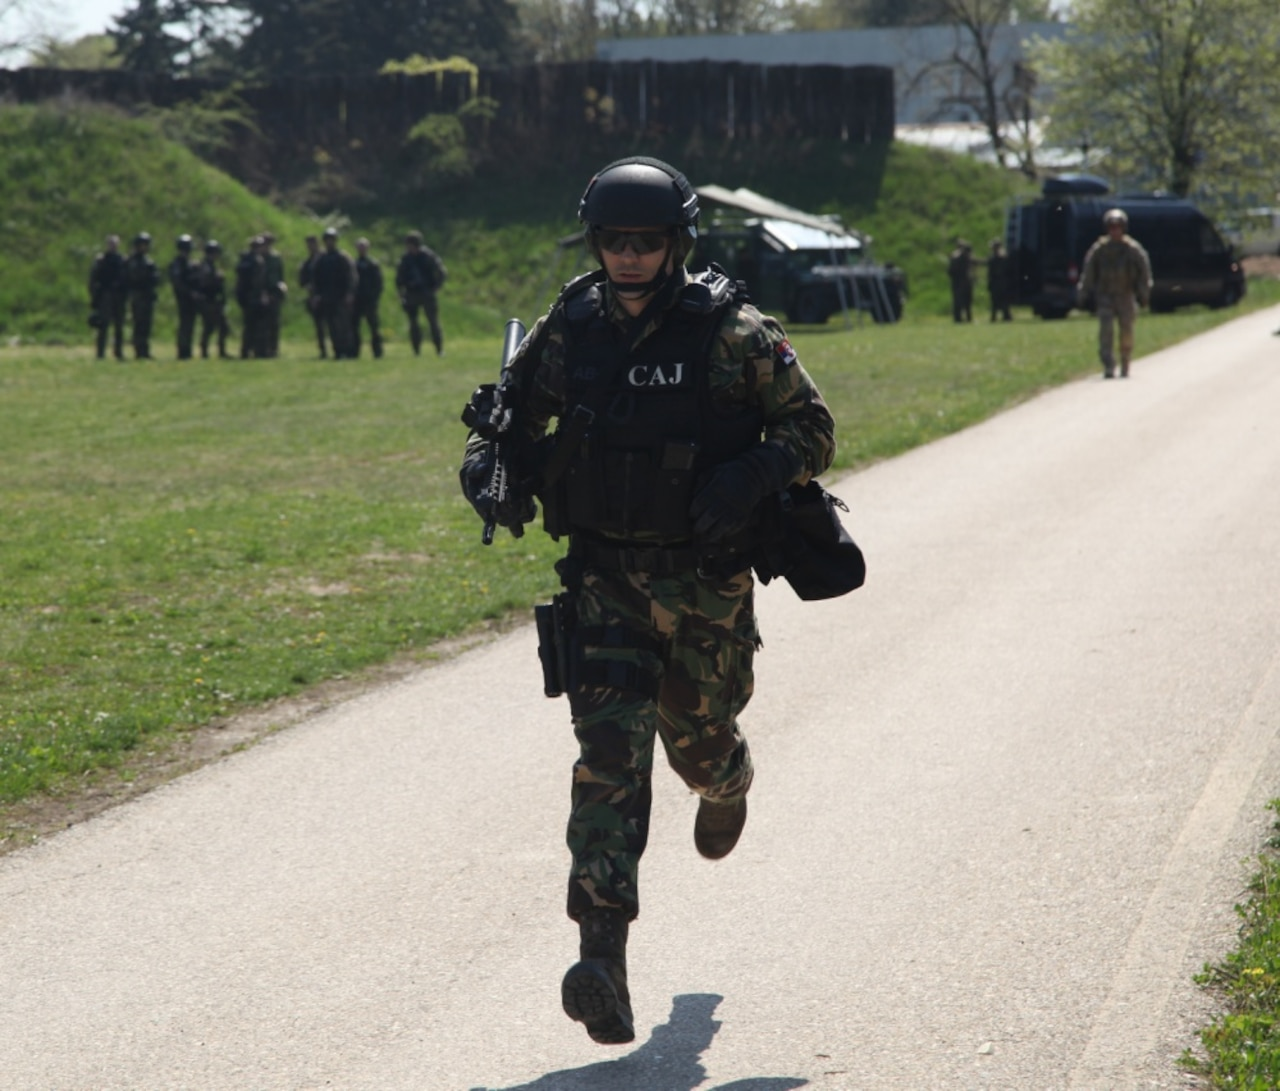 A Serbian special anti-terrorist unit officer runs to the first station of a shooting exercise during joint  combined exchange training with U.S. and Slovenian special operation forces at the SAJ headquarters complex in Serbia, April 10, 2017. The Serbian unit, known as the SAJ, serves as a special operations and tactical unit of the Serbian police and will receive training in a variety of tactics and techniques over the course of the JCET to increase their effectiveness in future operations. Army photo by Spc. Simeon Trombitus